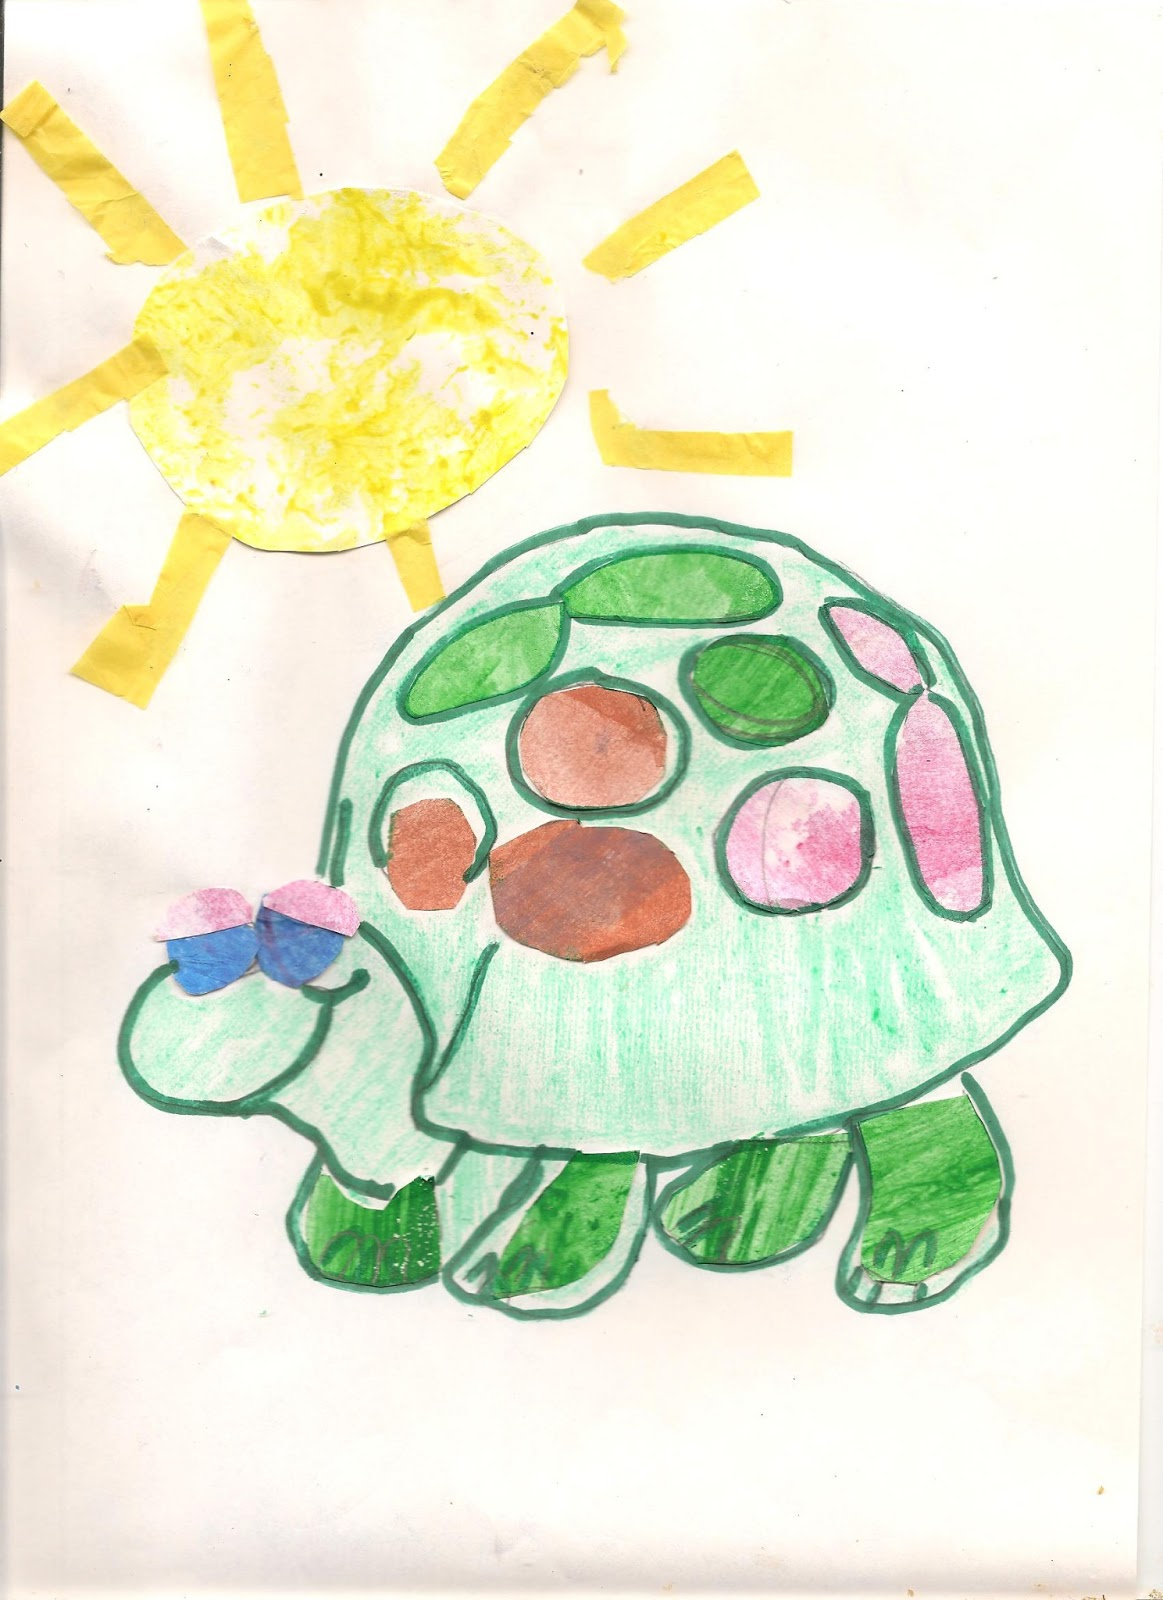 how to paint like eric carle homeschool art project collage kids